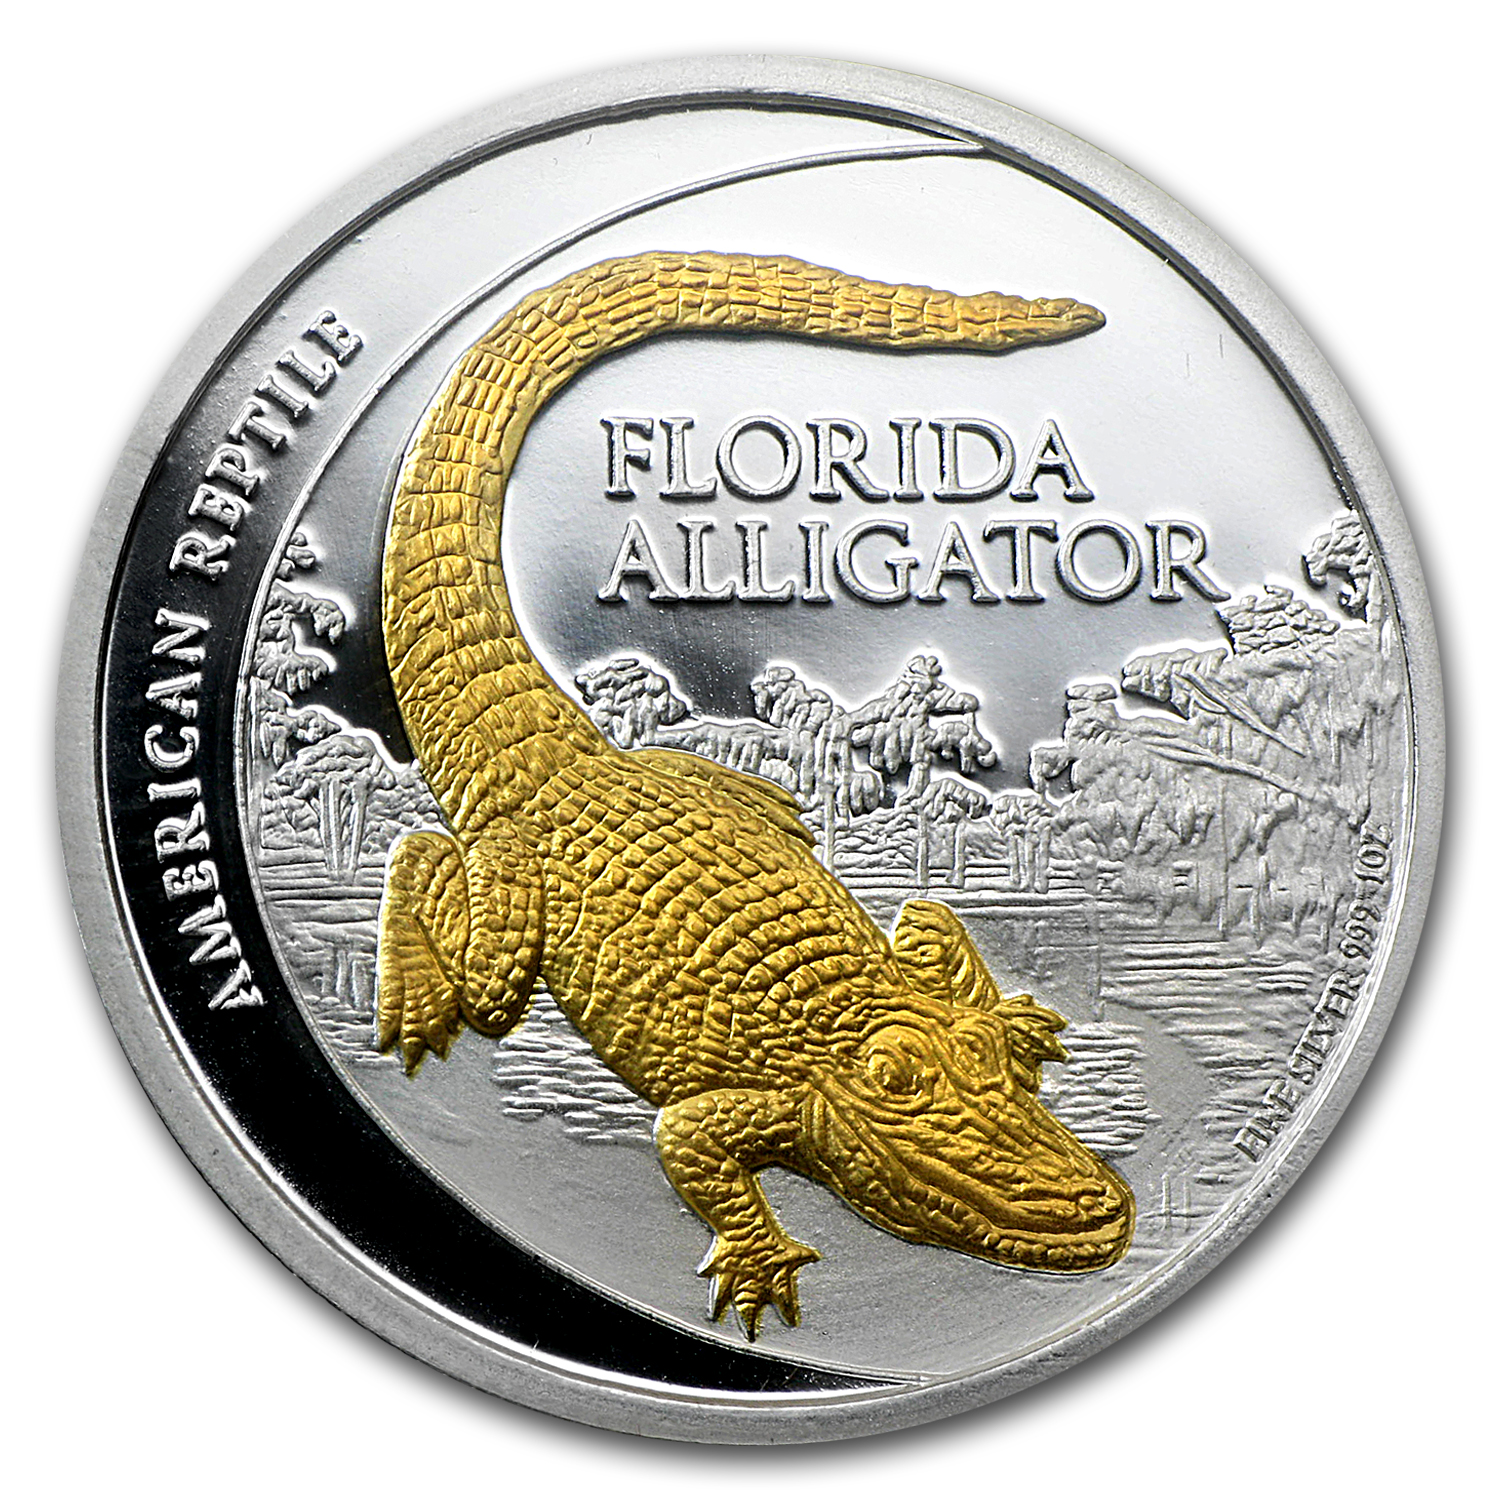 2012 Niue 1 oz Silver $2 Gilded Florida Alligator Proof